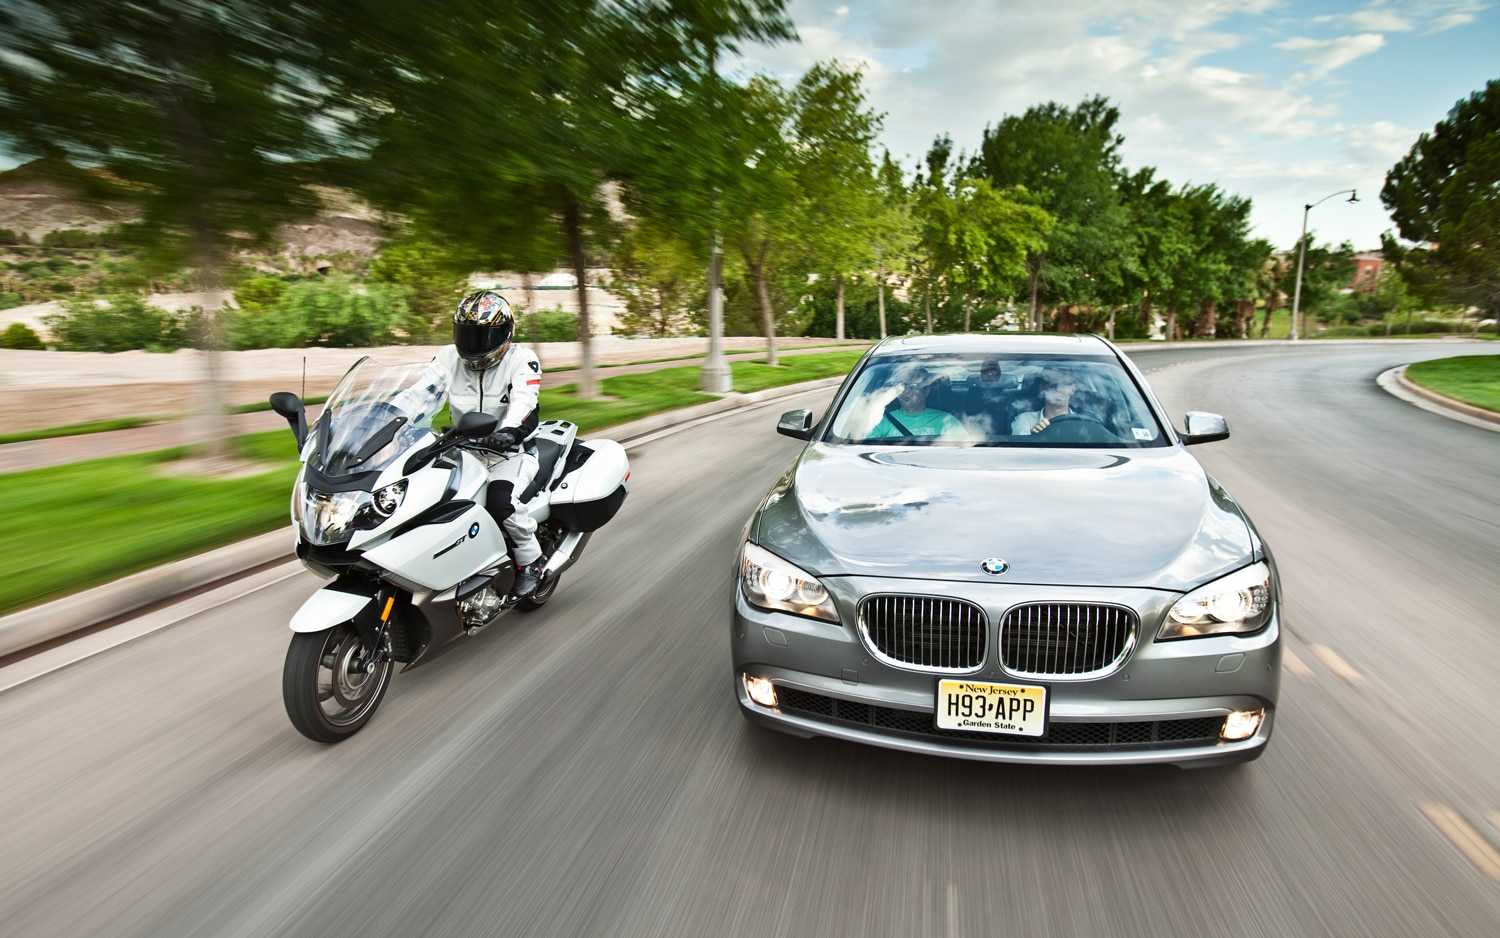 BMW 740i And BMW K1600GT Front View Driving